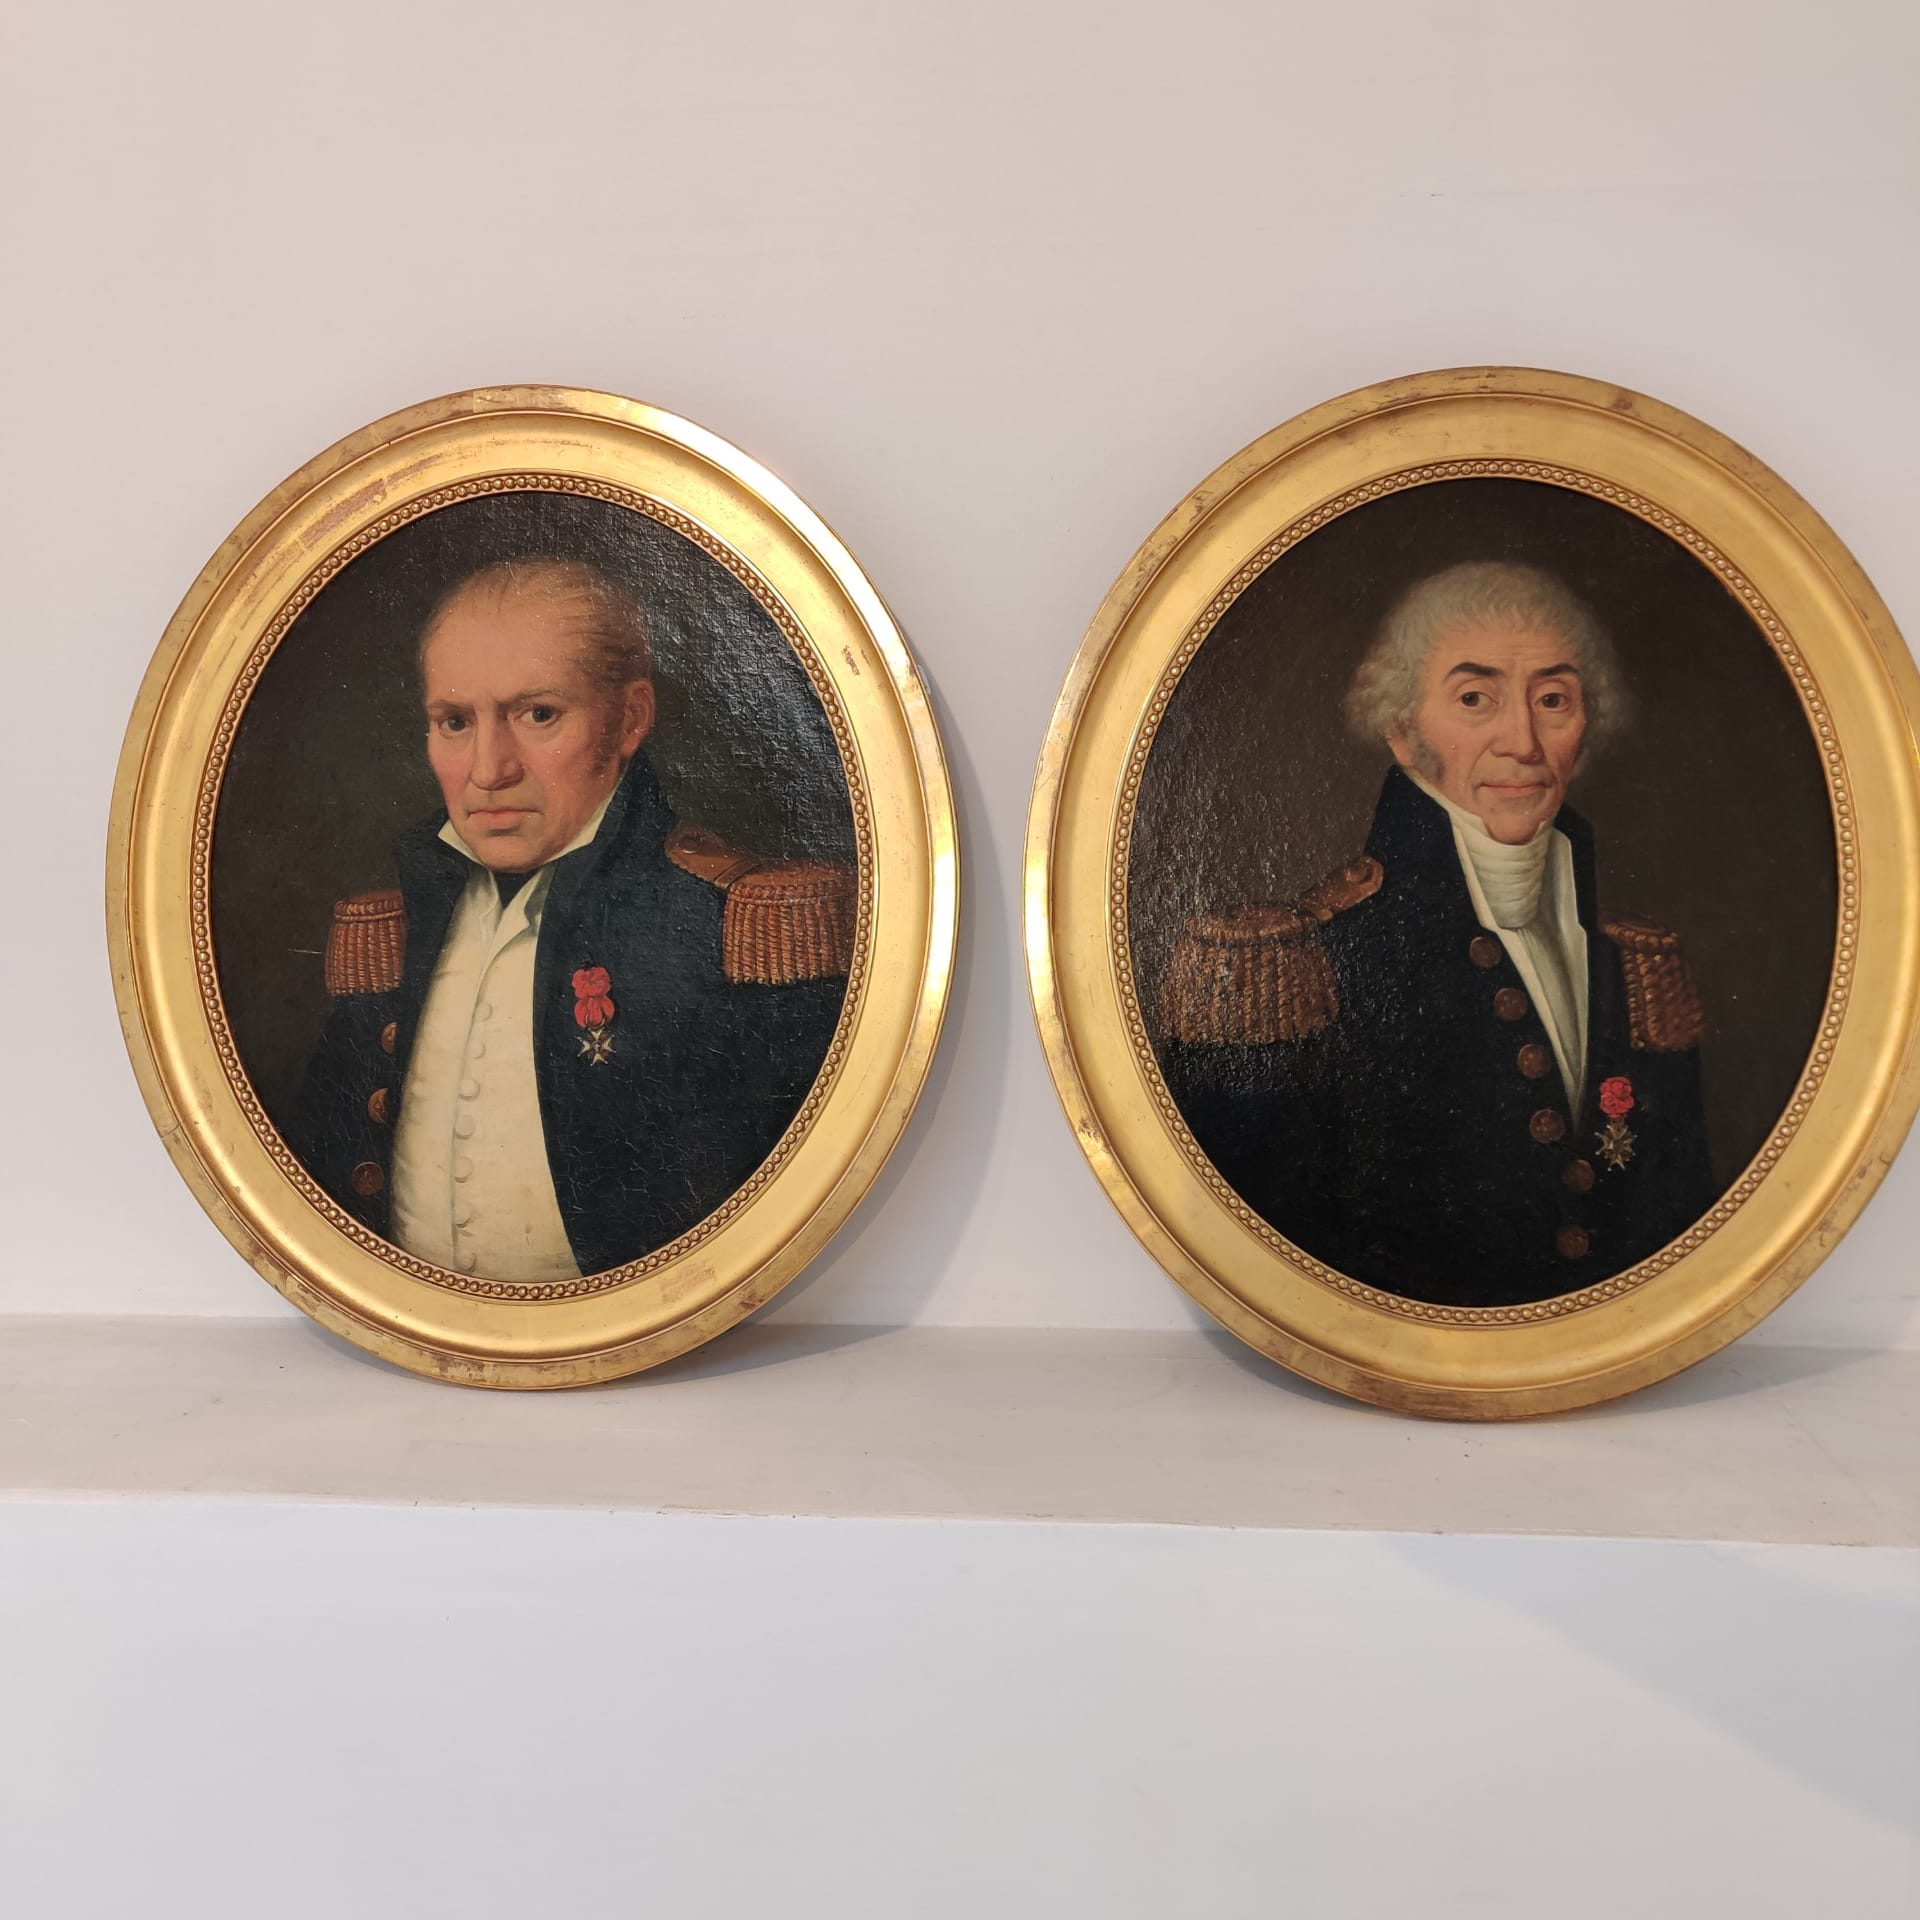 Pair of military portraits